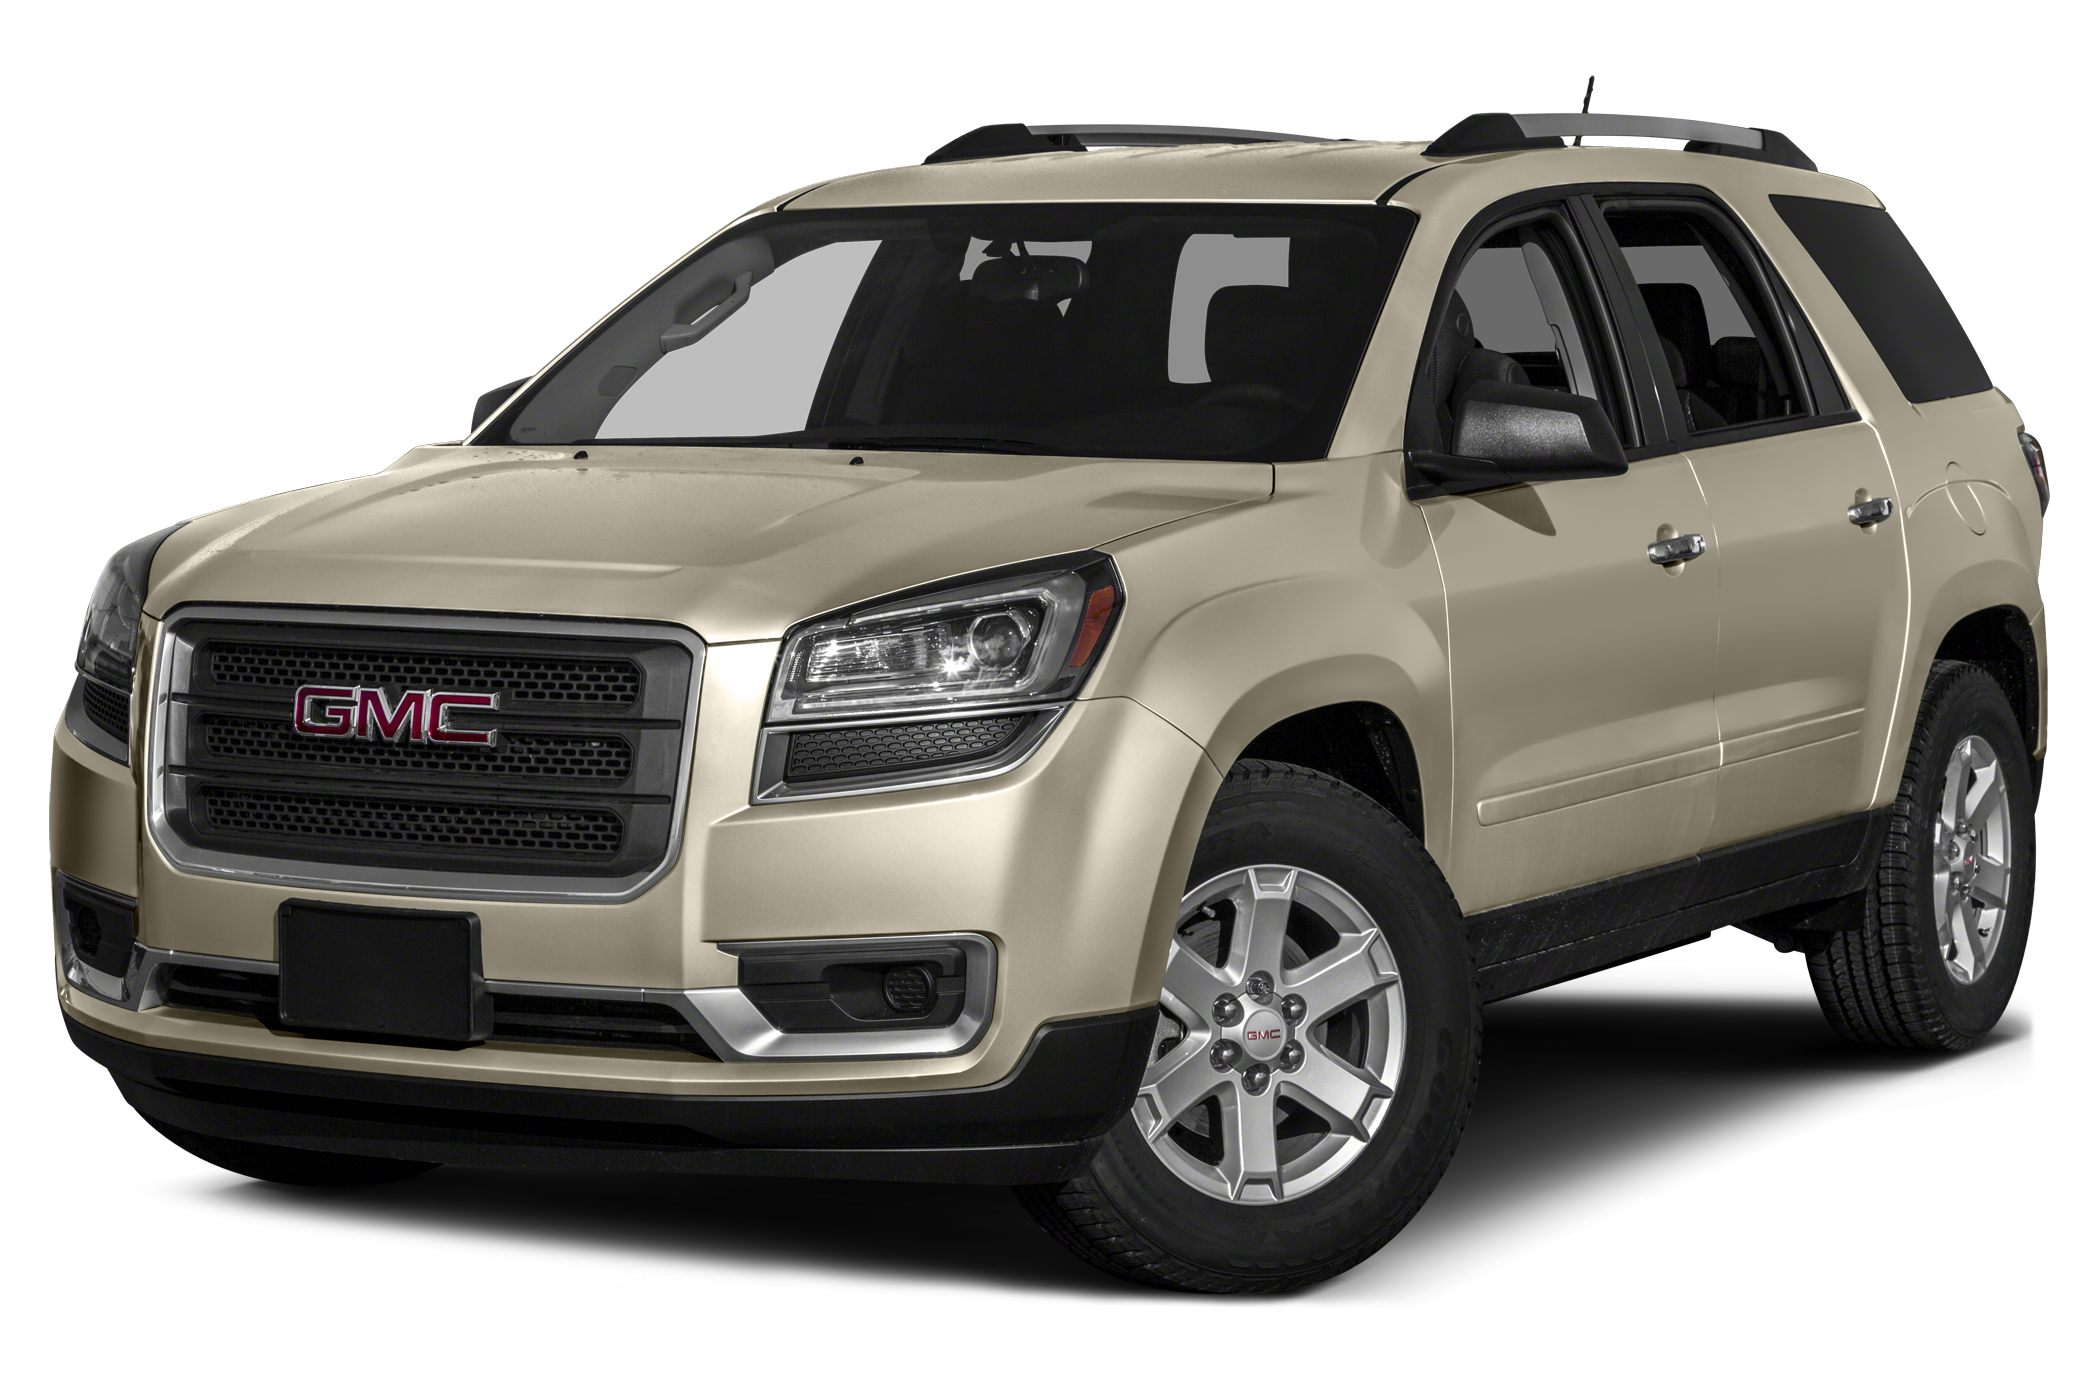 2013 GMC Acadia SLT-1 SLT trim 1500 below Kelley Blue Book CARFAX 1-Owner ONLY 35390 Miles